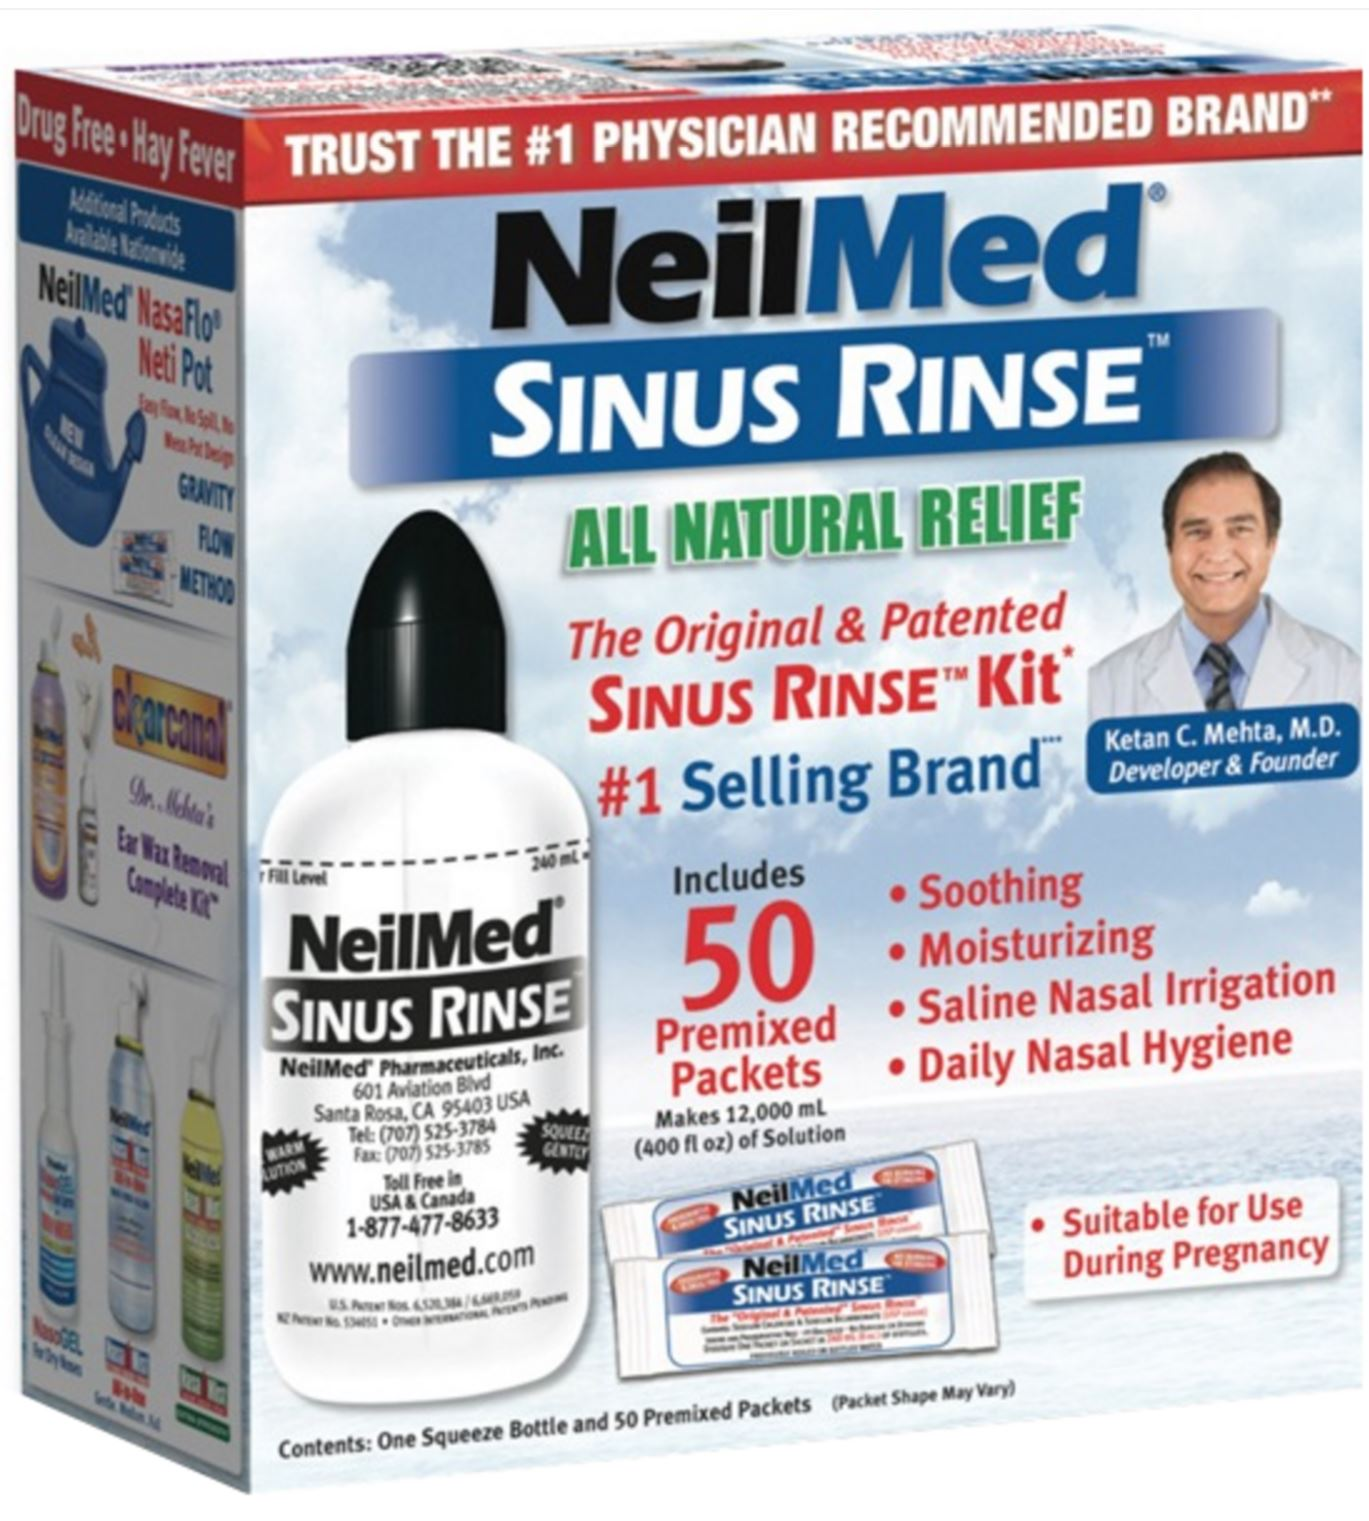 NeilMed Sinus Rinse for congestion during pregnancy